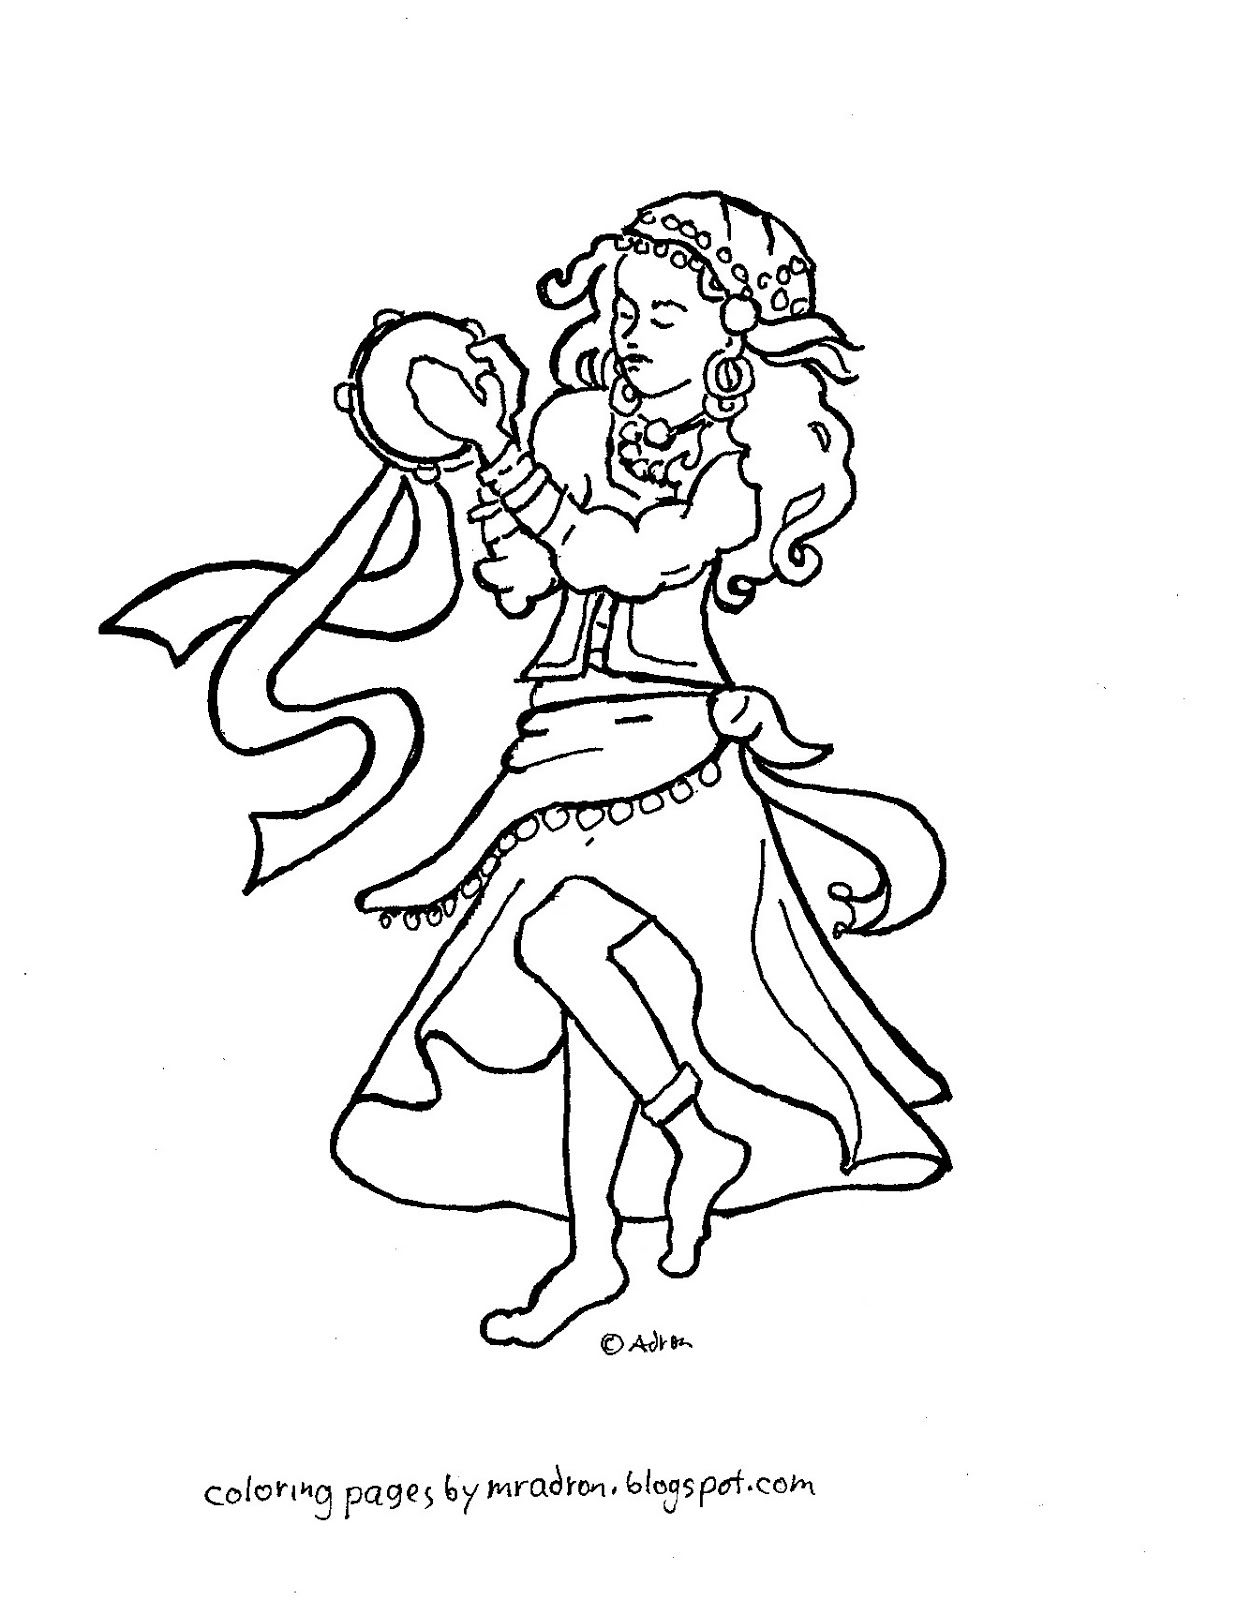 Coloring Pages for Kids by Mr. Adron: Esmeralda the Gypsy Girl ...